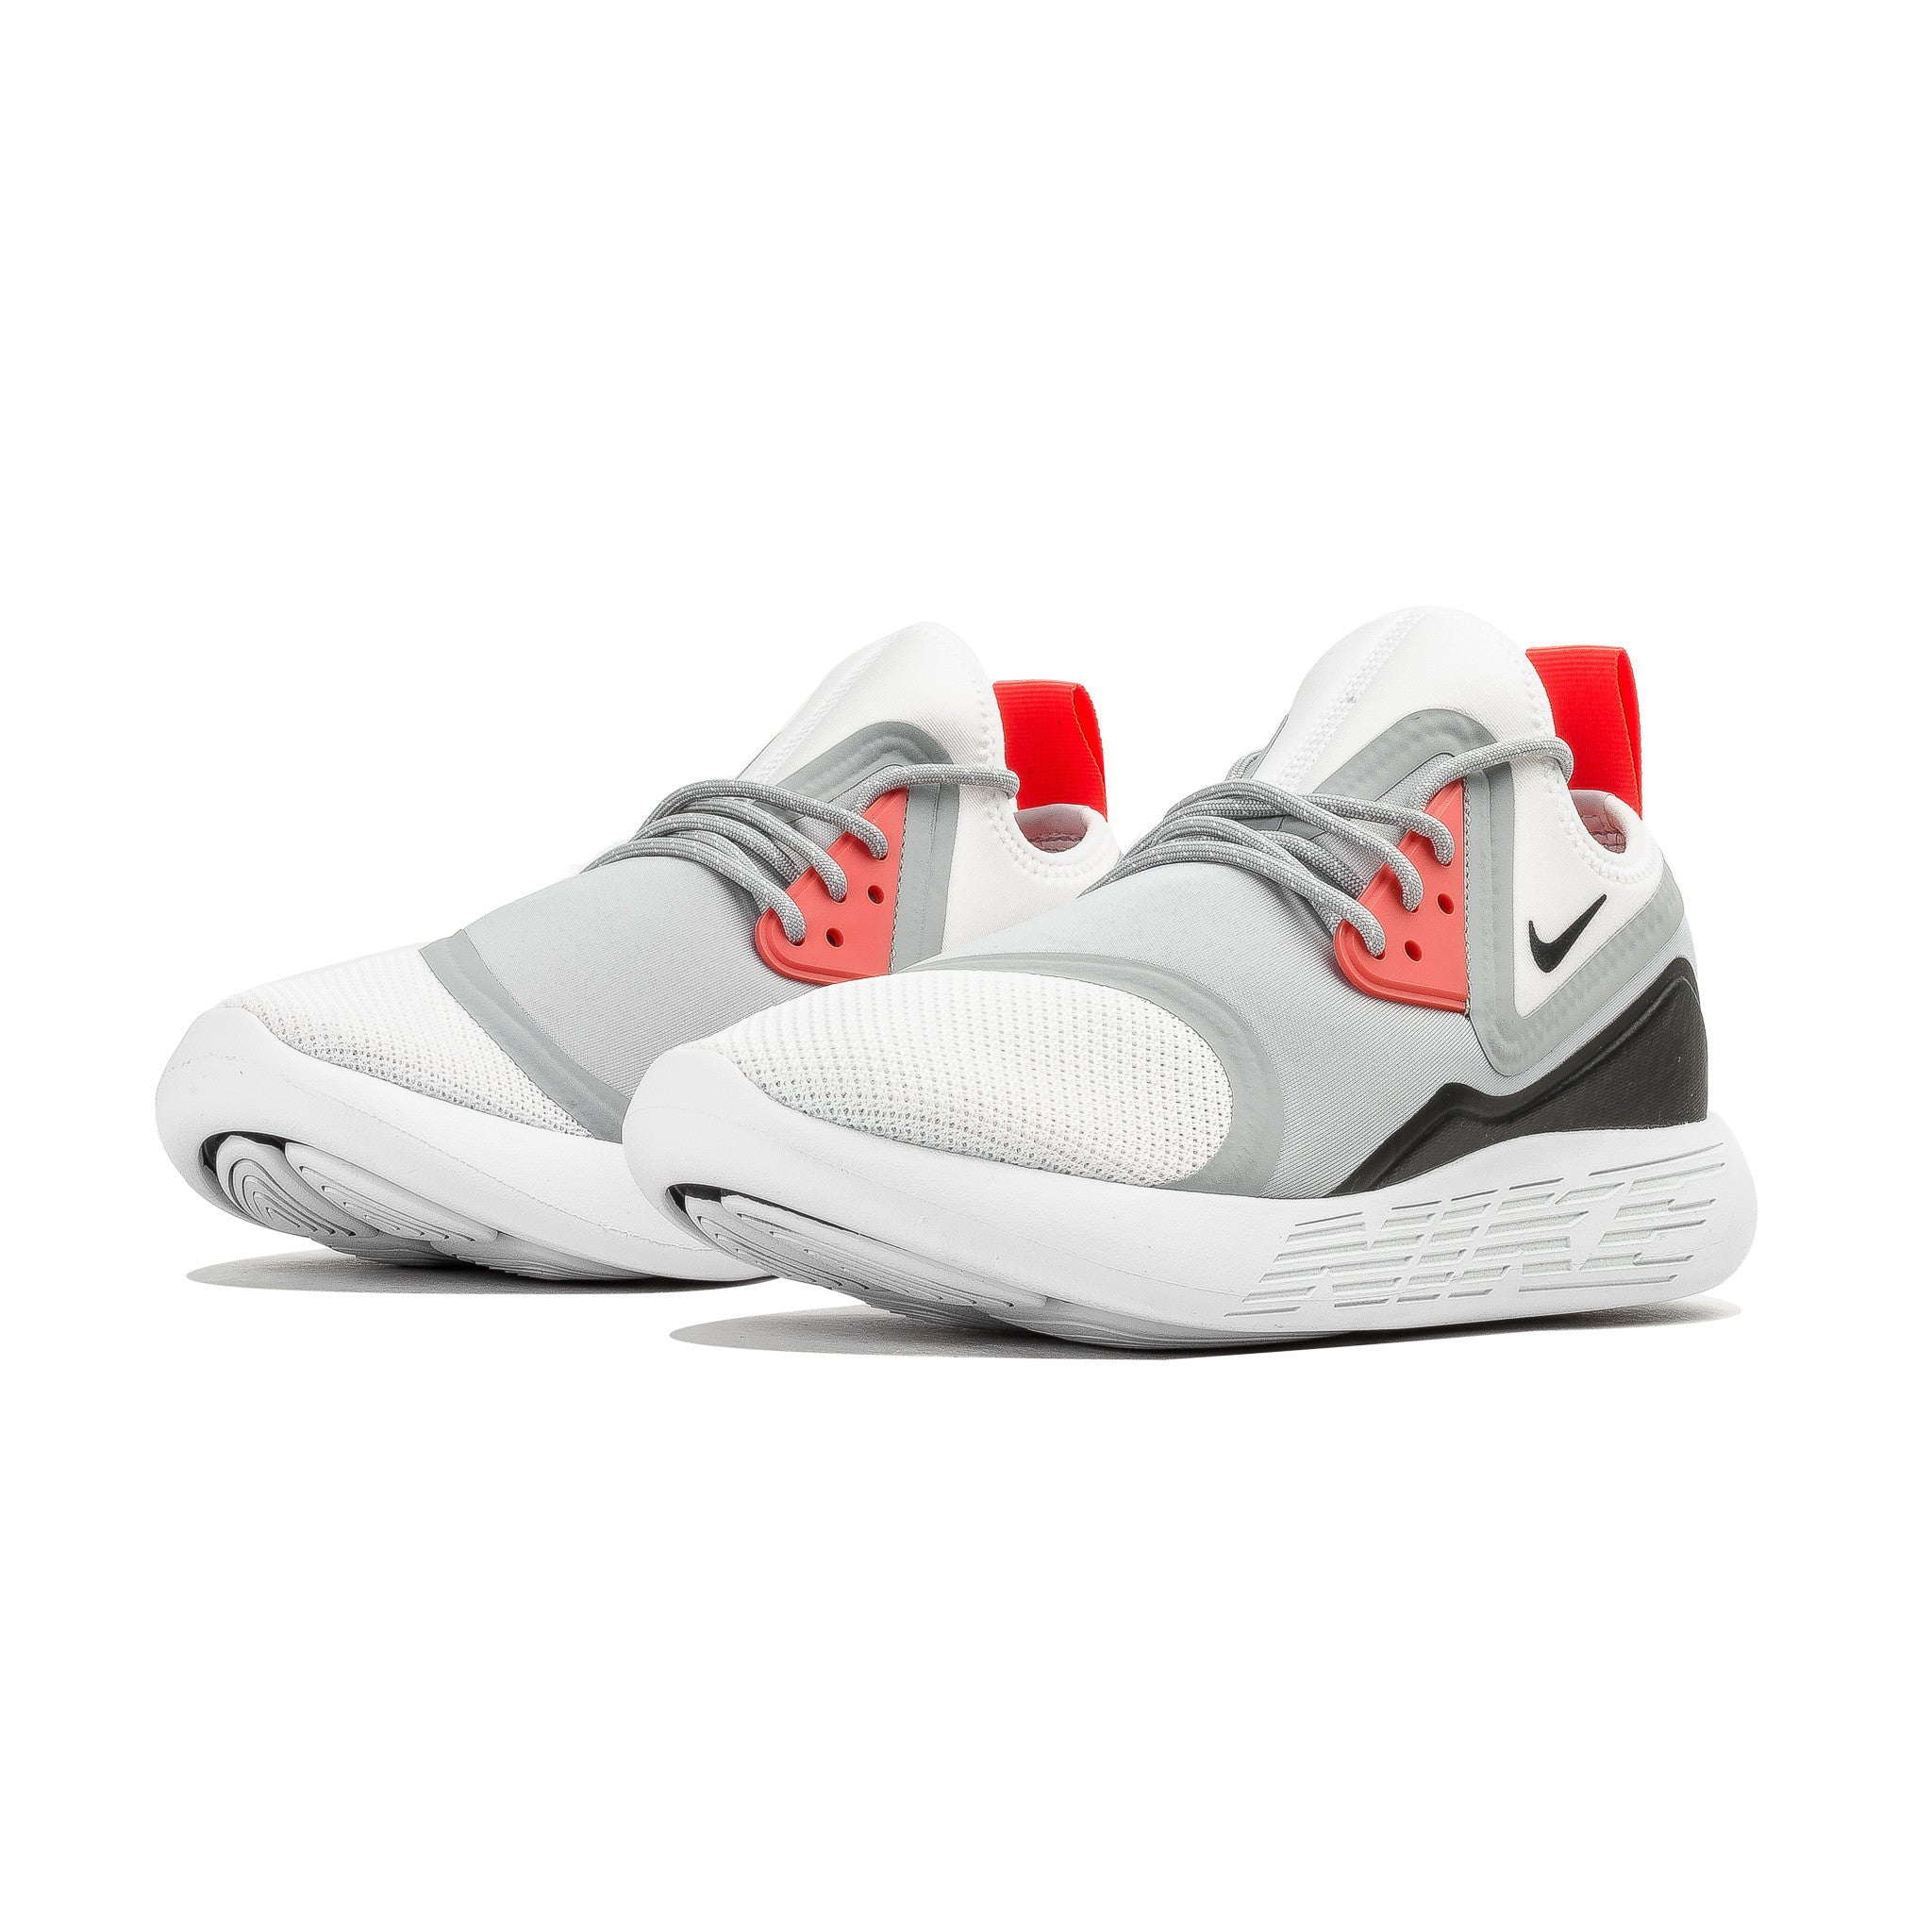 Nike Lunarcharge BN 933811-010